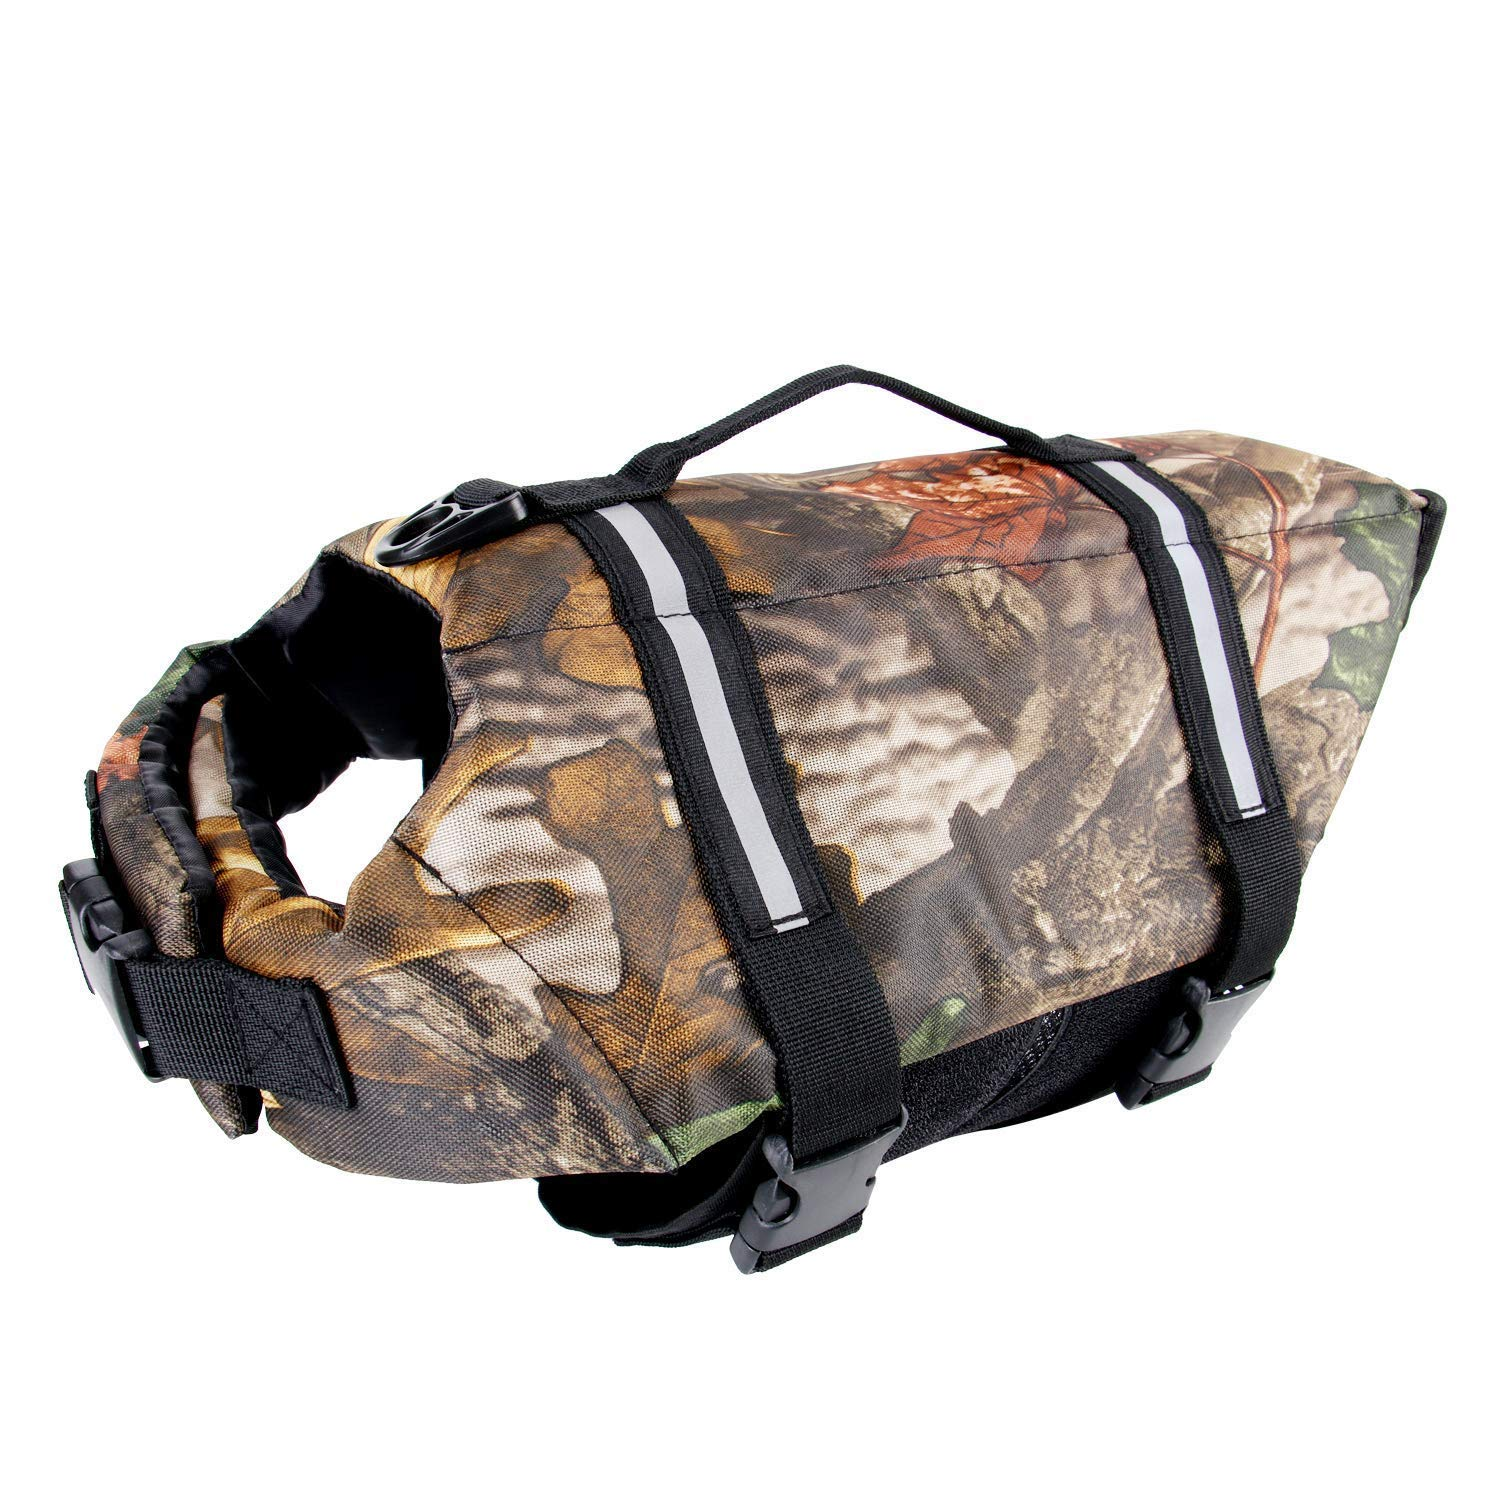 Preserver Camouflage Adjustable Buckles Swimming